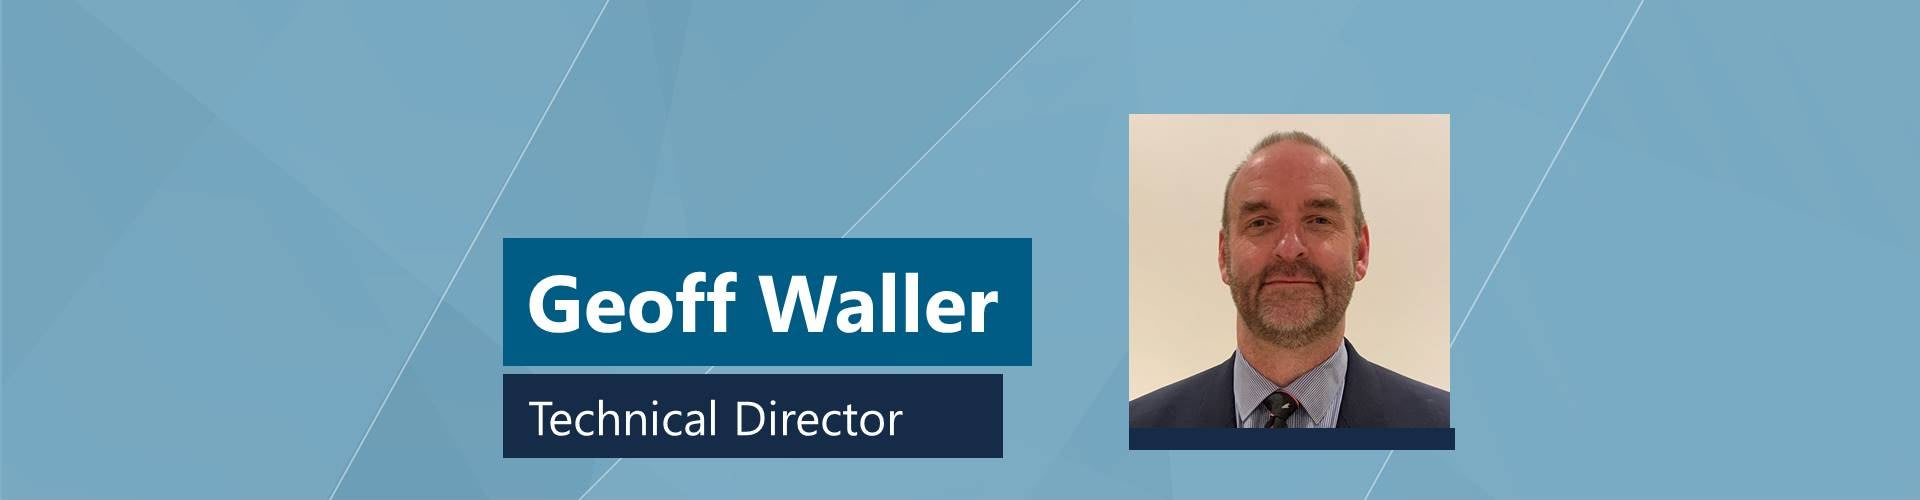 Geoff Waller promoted to Technical Director